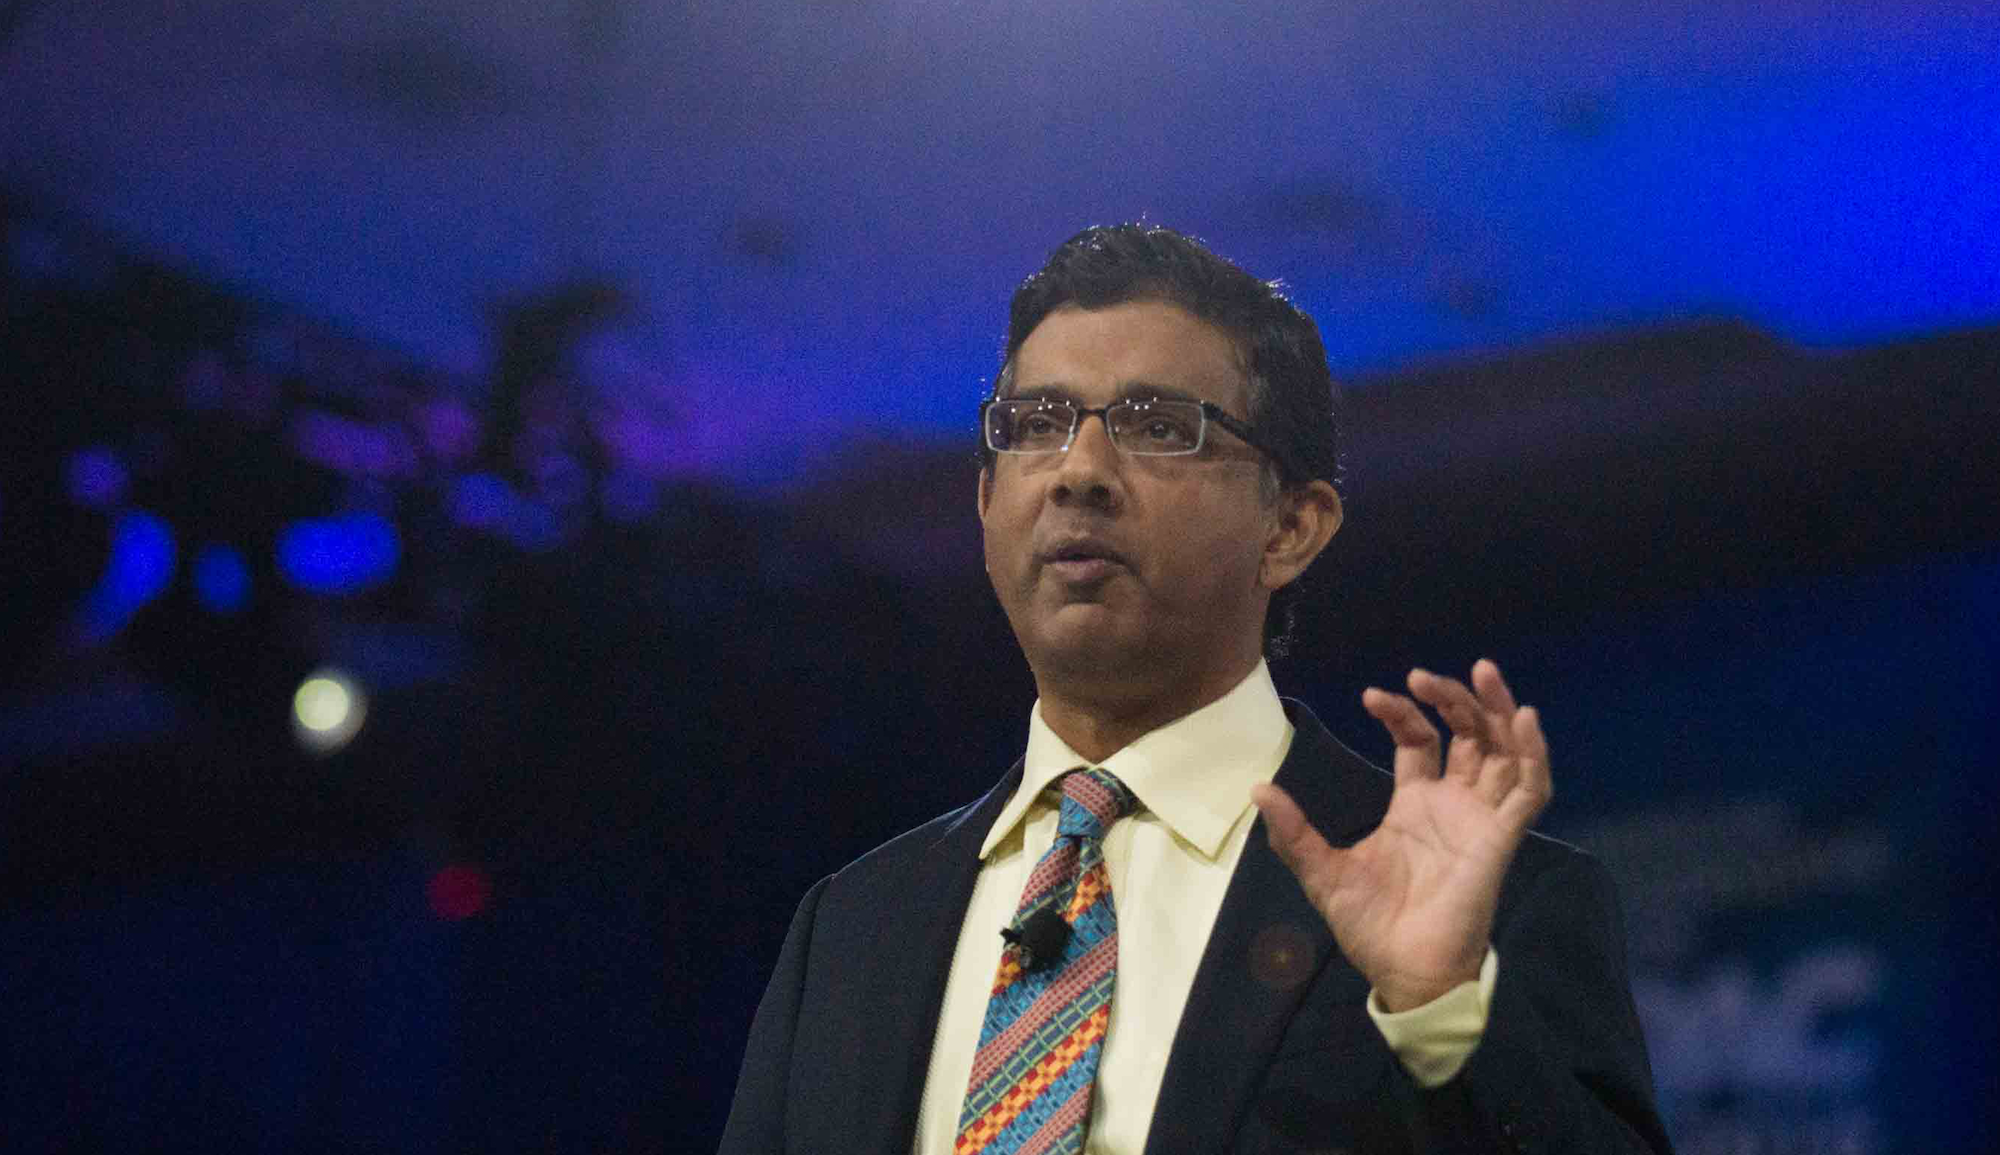 Trump to pardon pundit D'Souza for breaking campaign laws